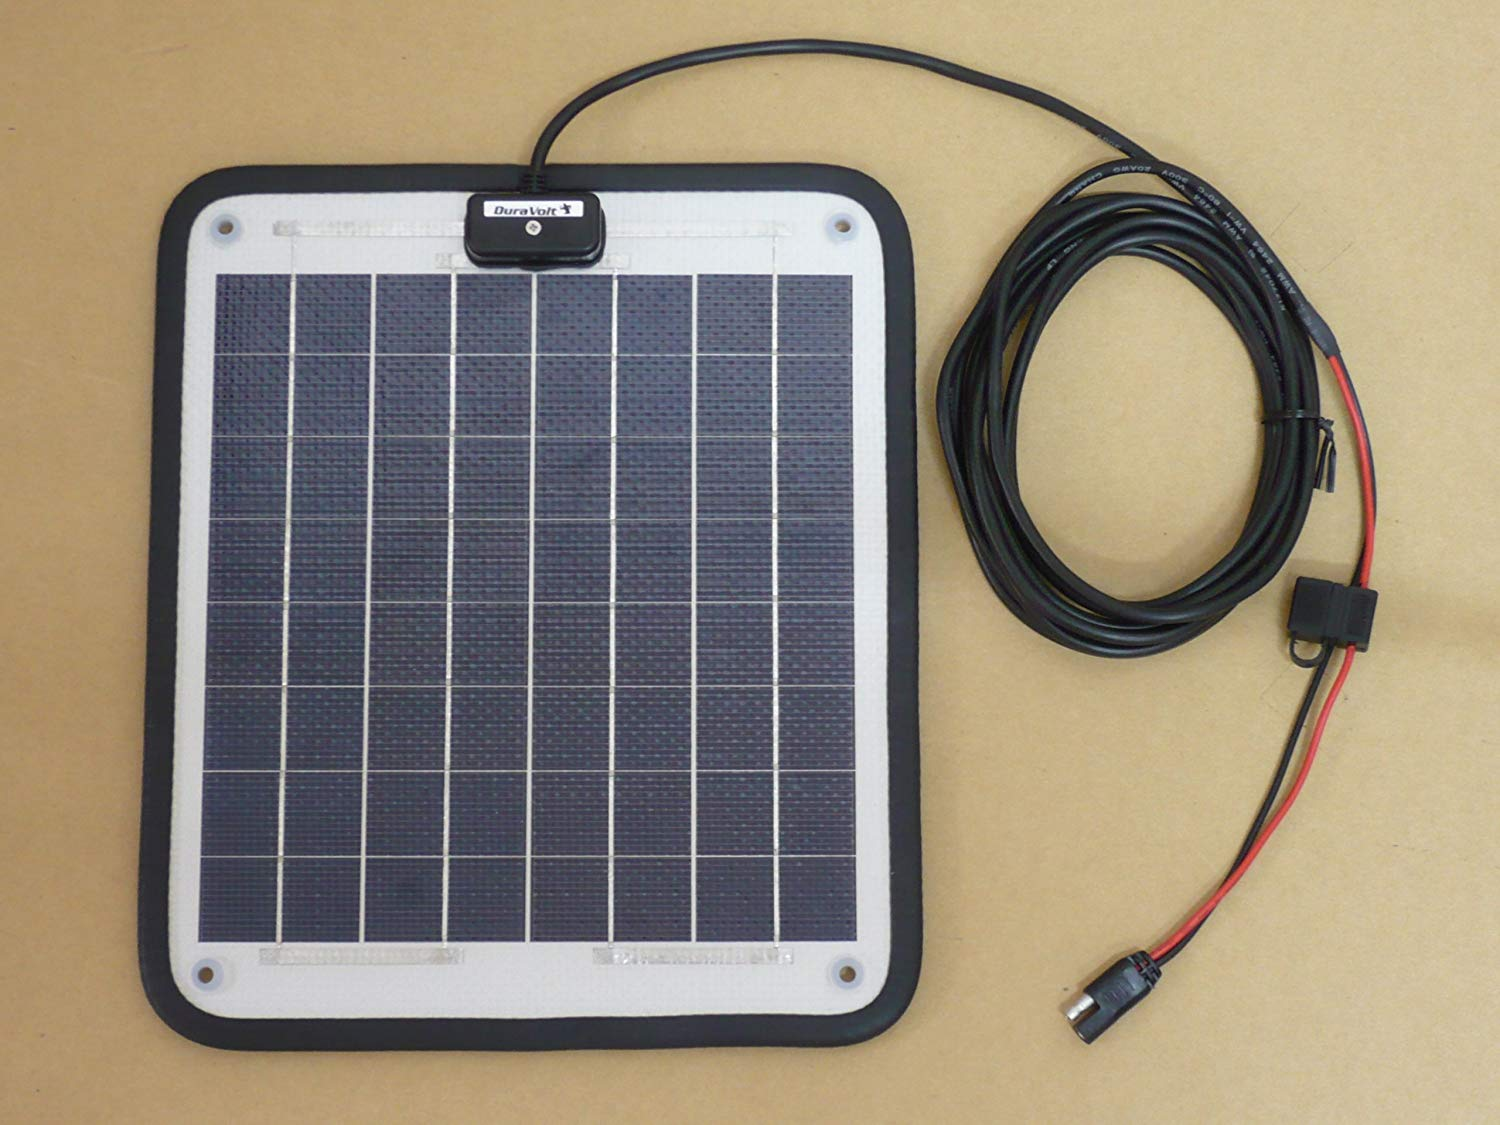 DuraVolt Magnetic Solar Battery Charger